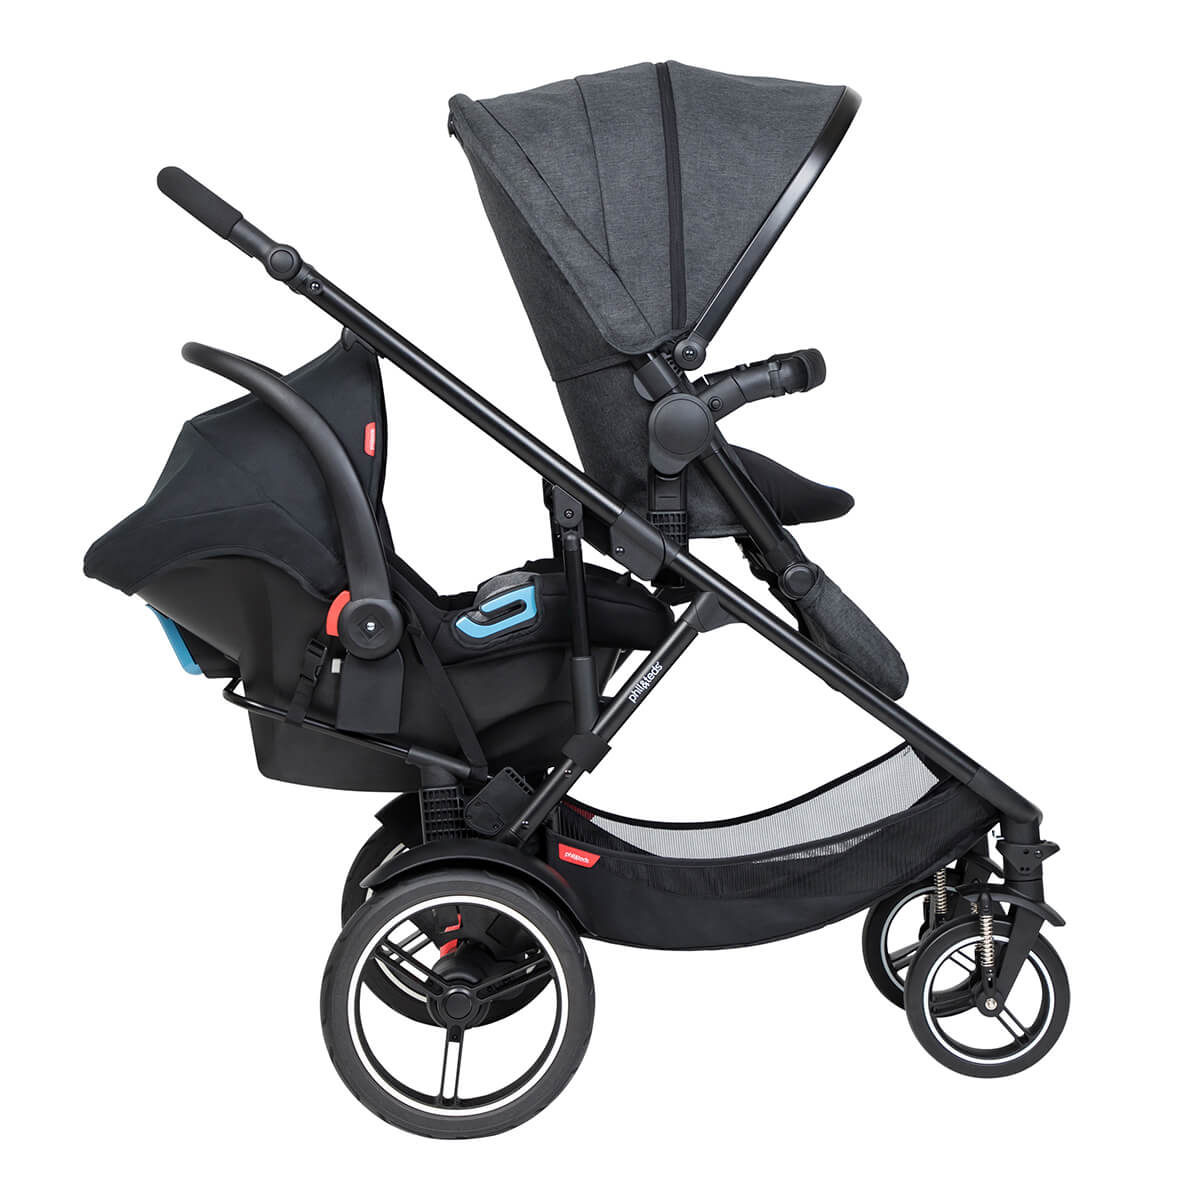 https://cdn.accentuate.io/4513464516704/19440099688632/philteds-voyager-buggy-in-forward-facing-mode-with-travel-system-in-the-rear-v1633401128280.jpg?1200x1200